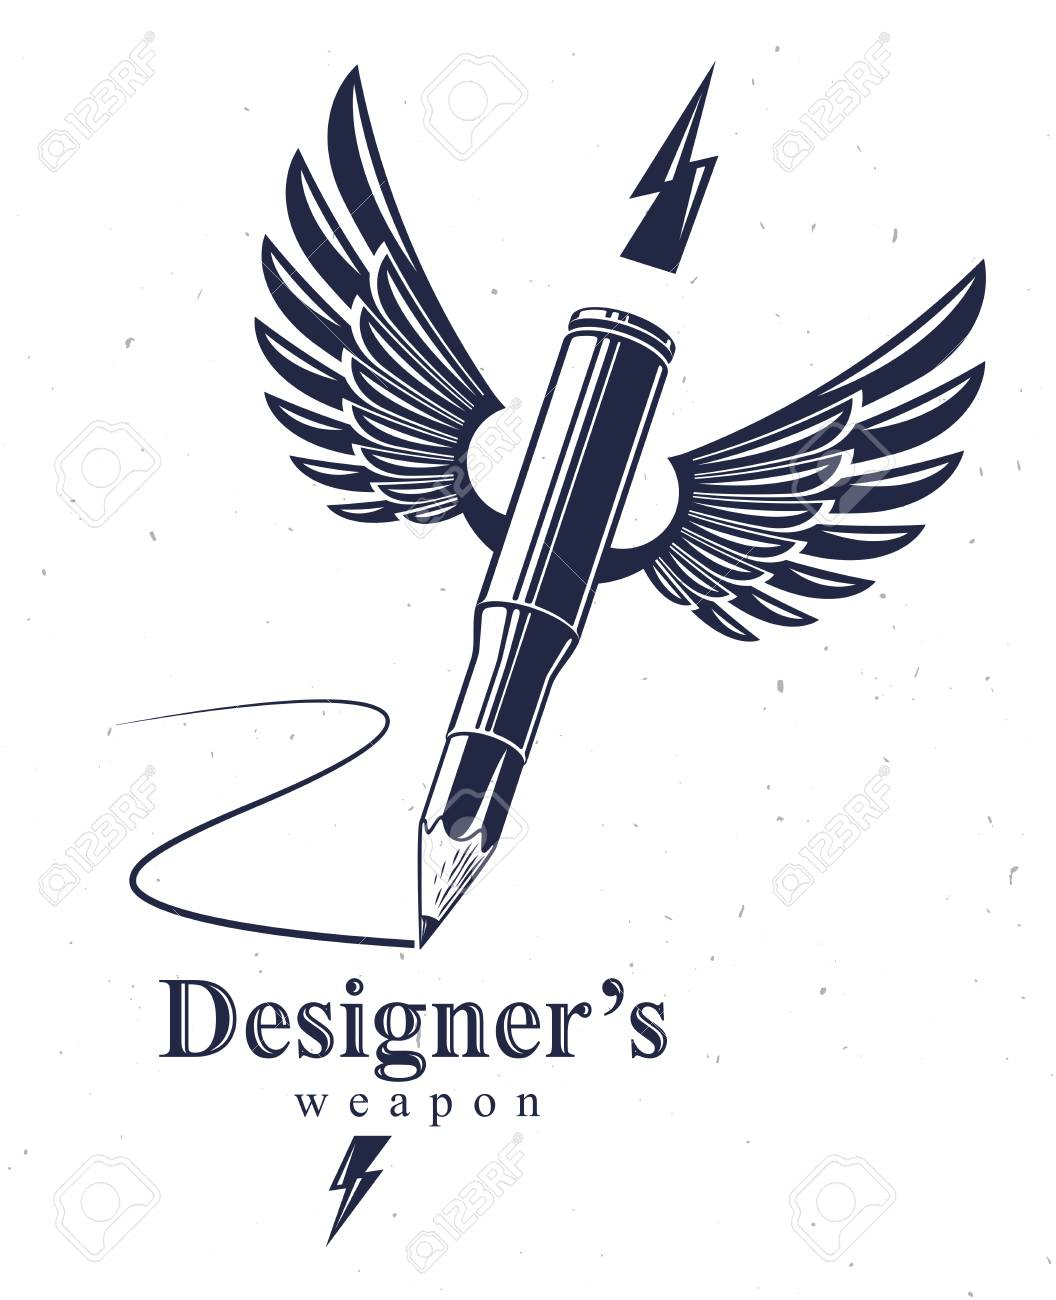 Idea is a weapon concept, weapon of a designer or artist allegory